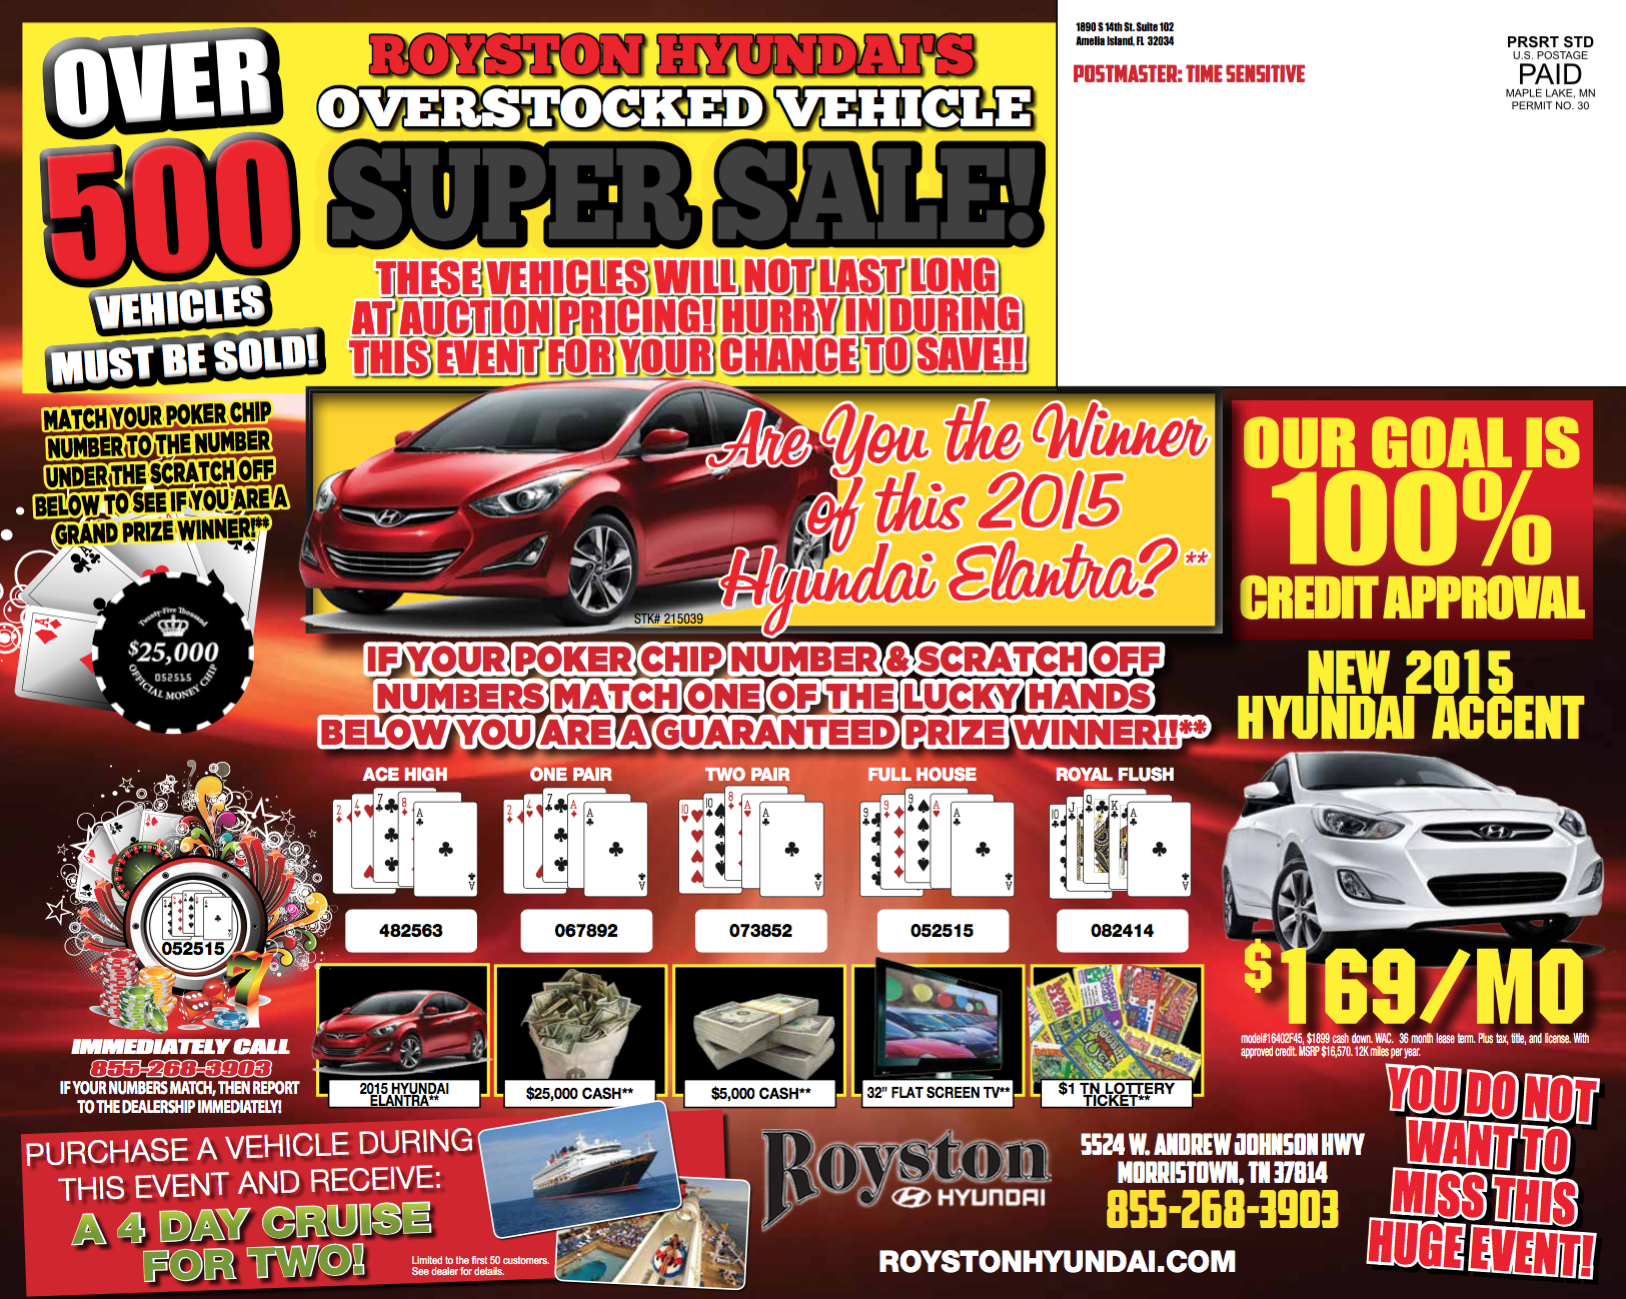 Automotive Direct Mail >> 12 X 15 Hyundai Biggest Vehicle Sale Automotive Direct Mail Folded